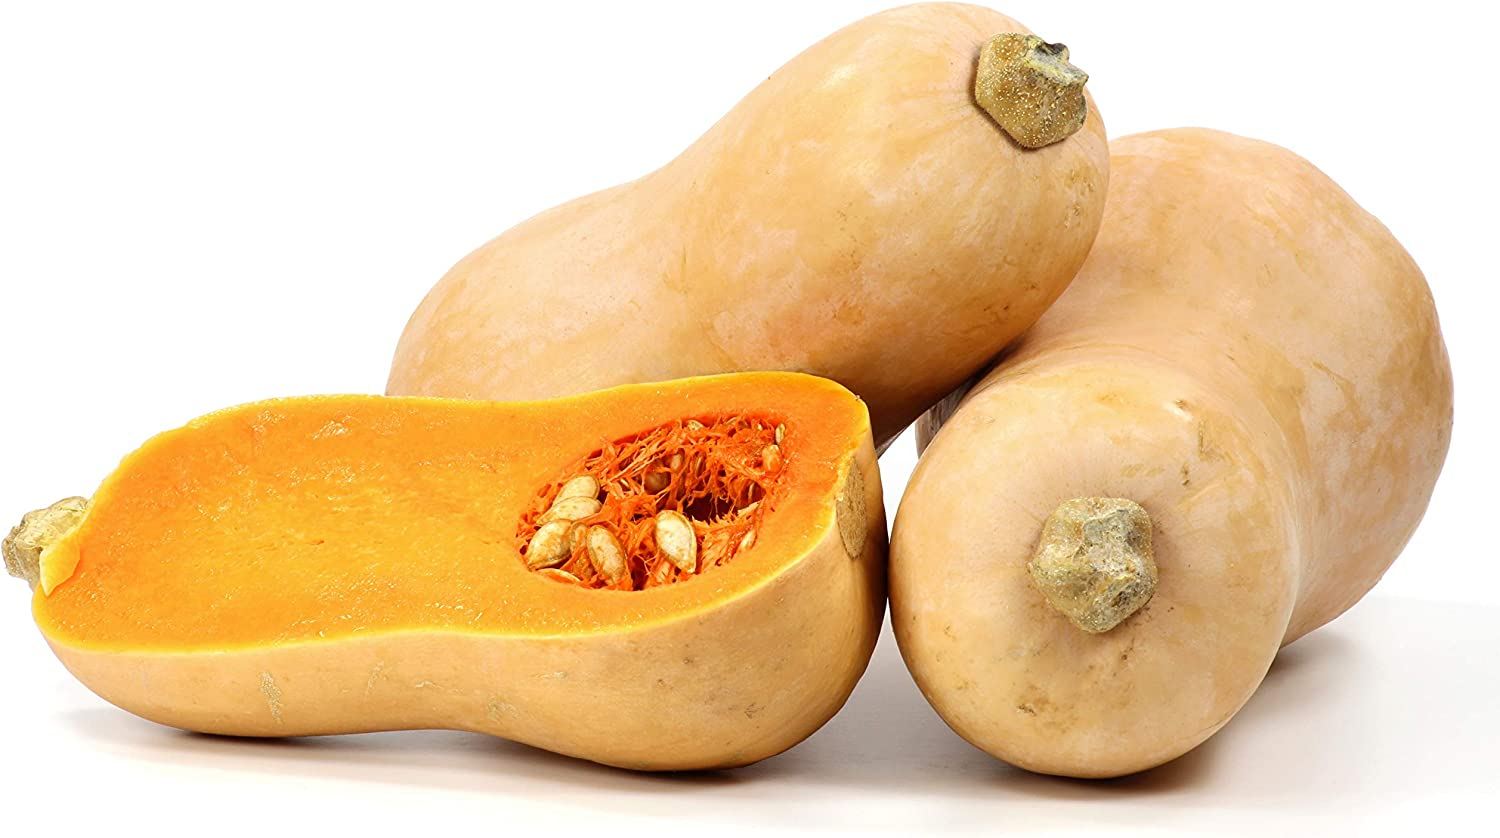 Sales of SALE items New product!! from new works Winter Squash Waltham Seeds Butternut